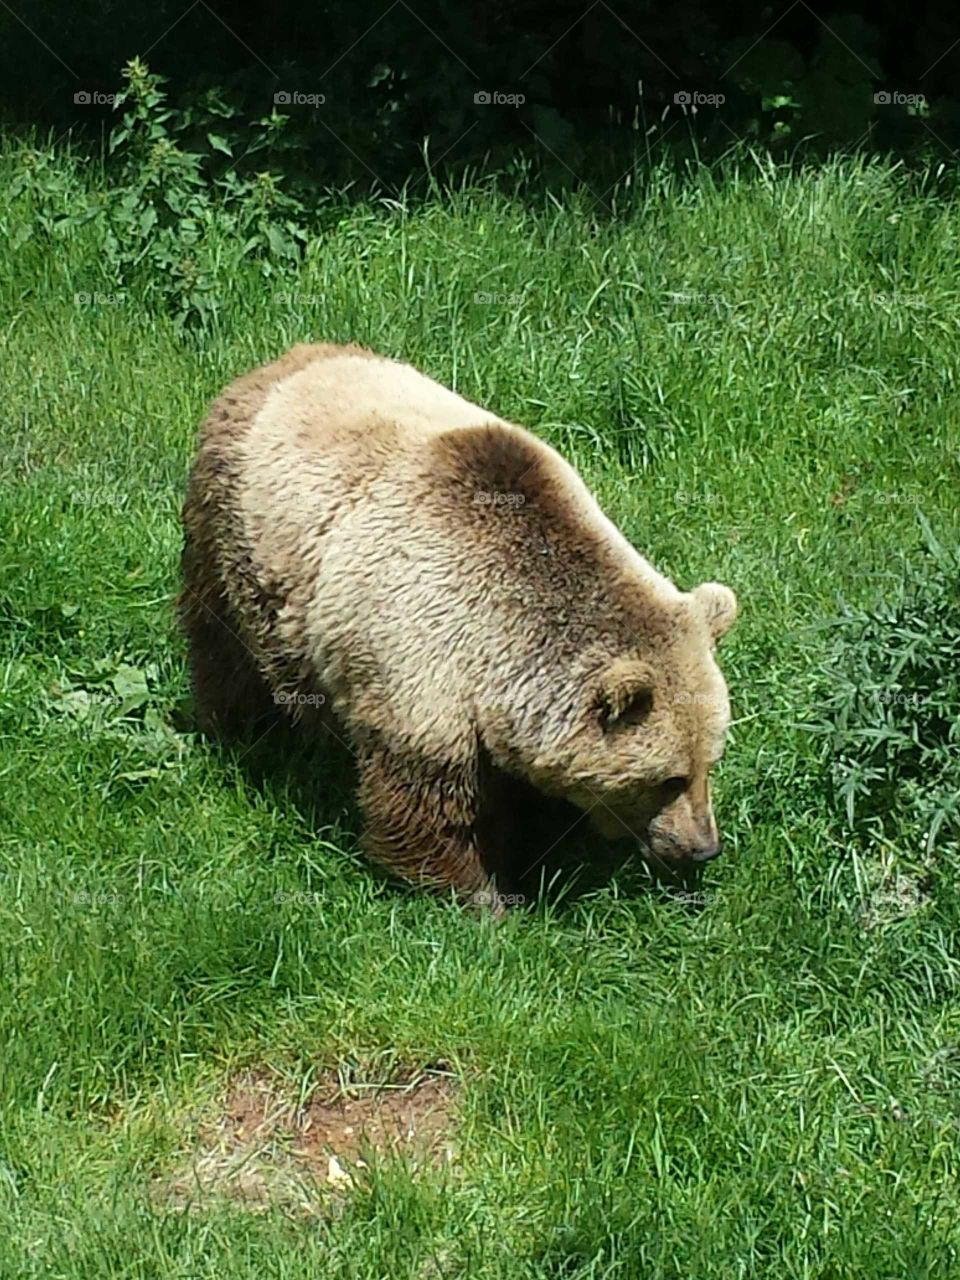 Just a Brown Bear munching on the Grass